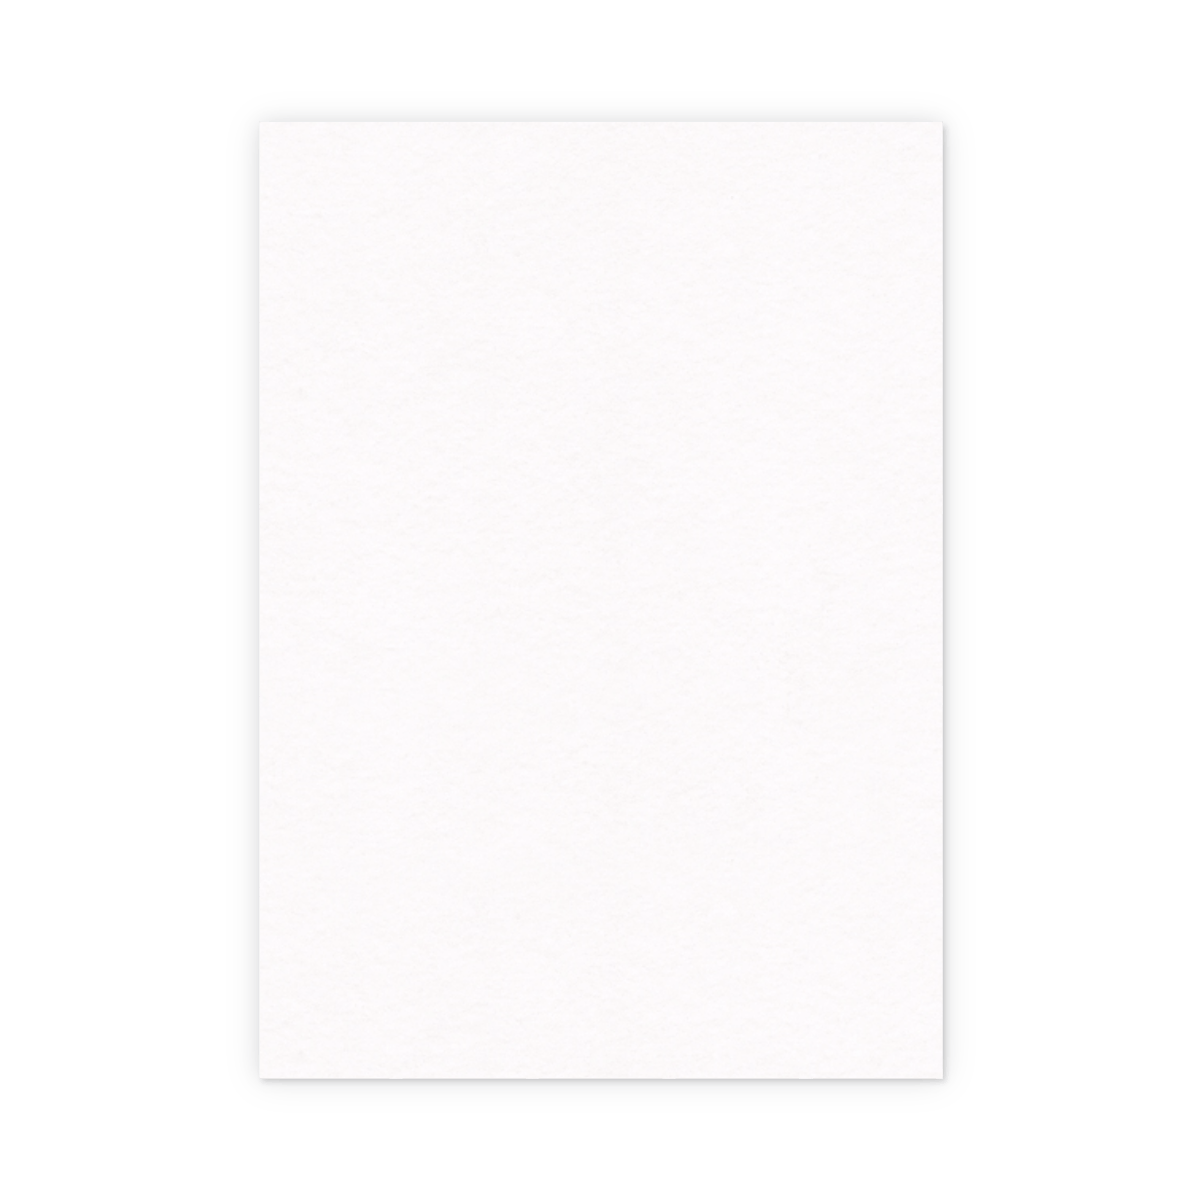 Https%3a%2f%2fwww.papier.com%2fproduct image%2f17510%2f4%2fclassic thin border 4589 rueckseite 1485965611.png?ixlib=rb 1.1